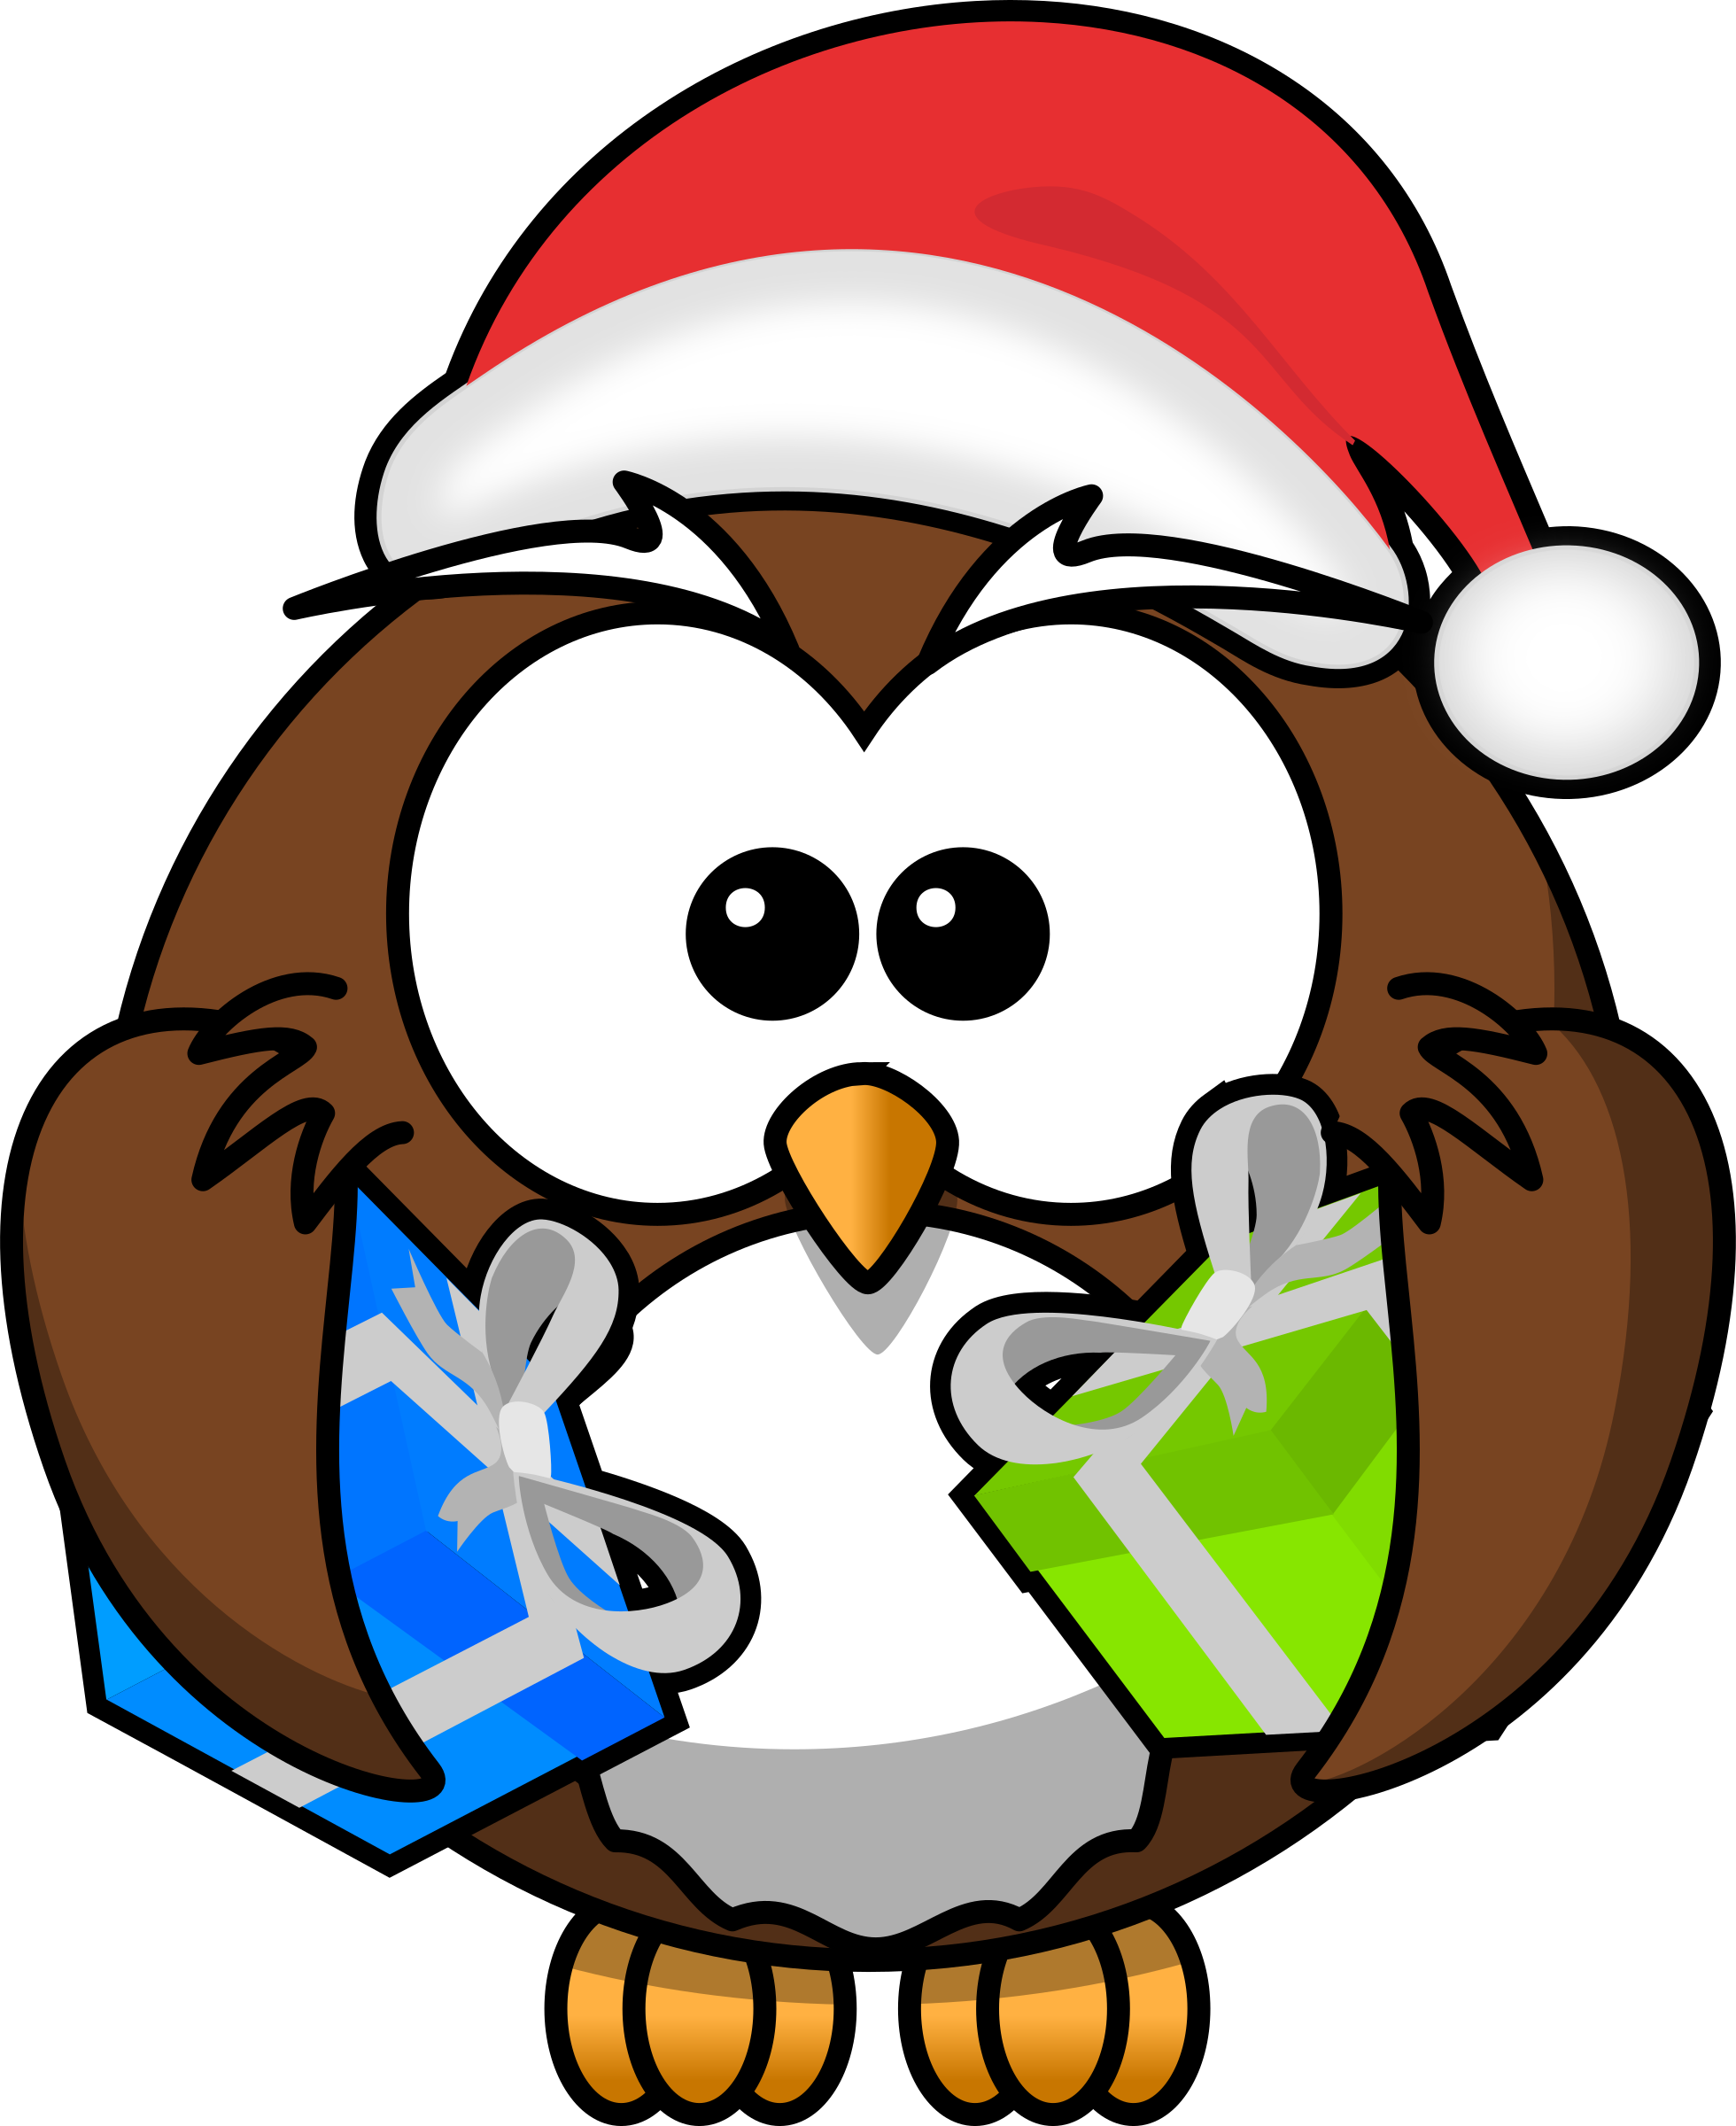 Christmas animals clipart svg library library Christmas Owl Clipart svg library library